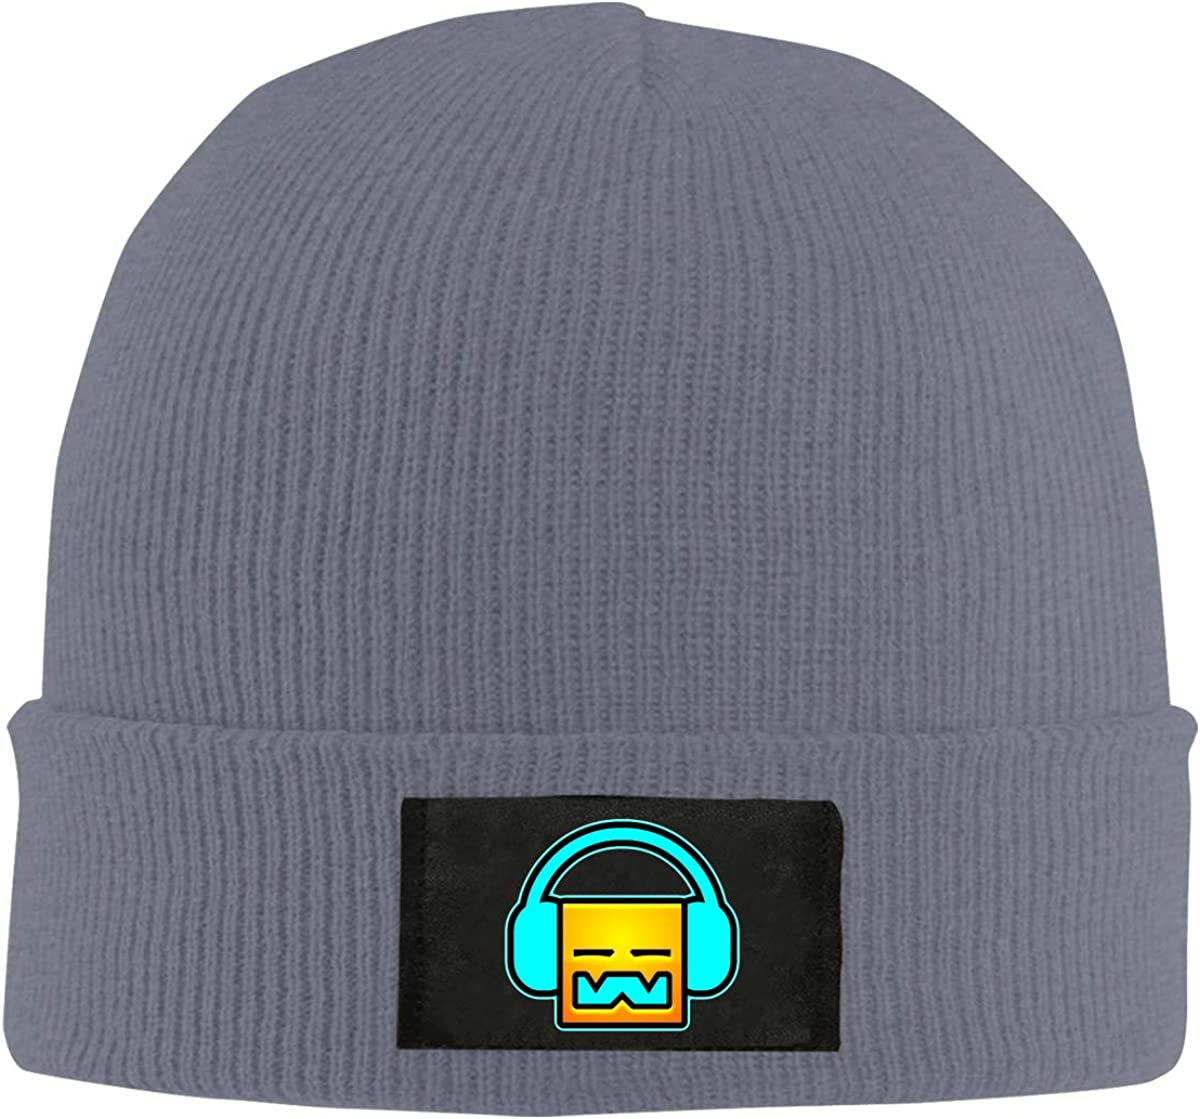 SHOEWPQIA Geometry Dash Beanie Hat Soft Unisex Knit Cap for Men/Women